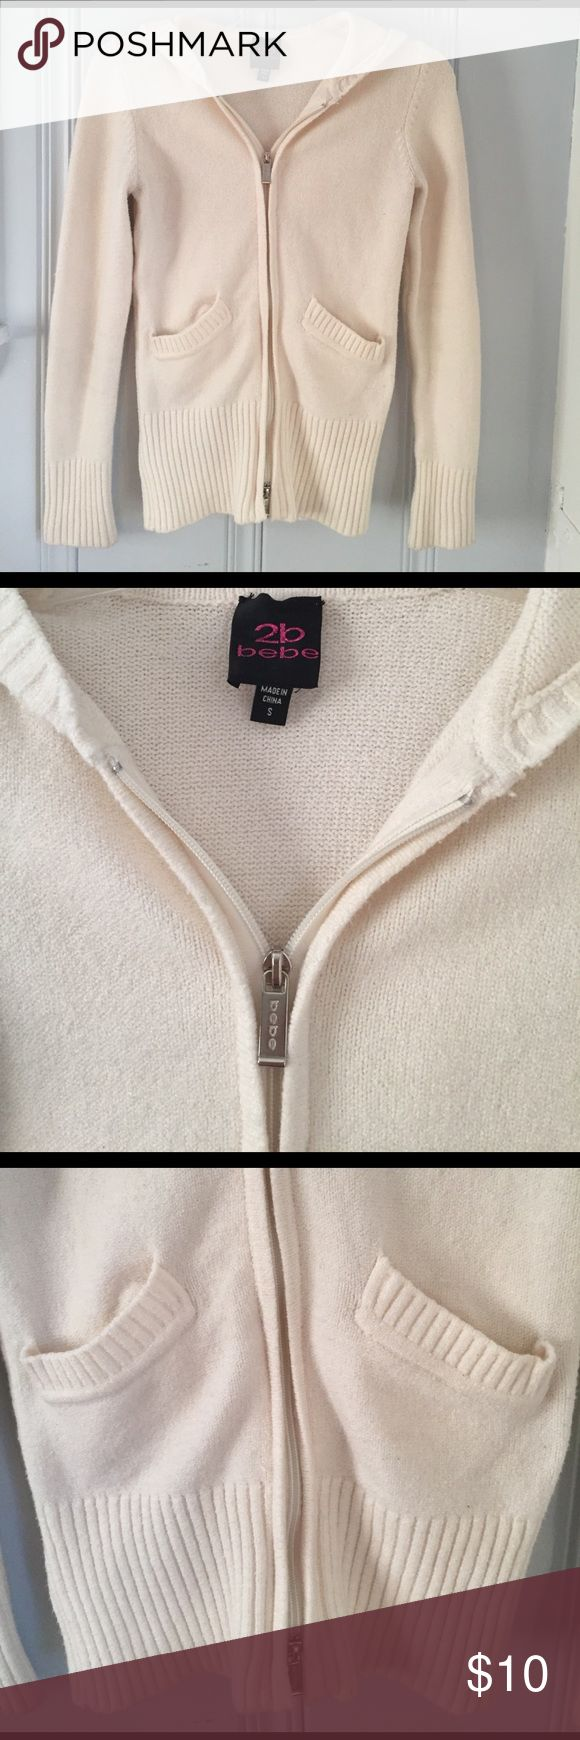 BEBE zip up hooded sweater Pre-loved cream colored BEBE zip up hooded sweater. Not sure the material but feels sort of like a knit only thicker bebe Tops Sweatshirts & Hoodies